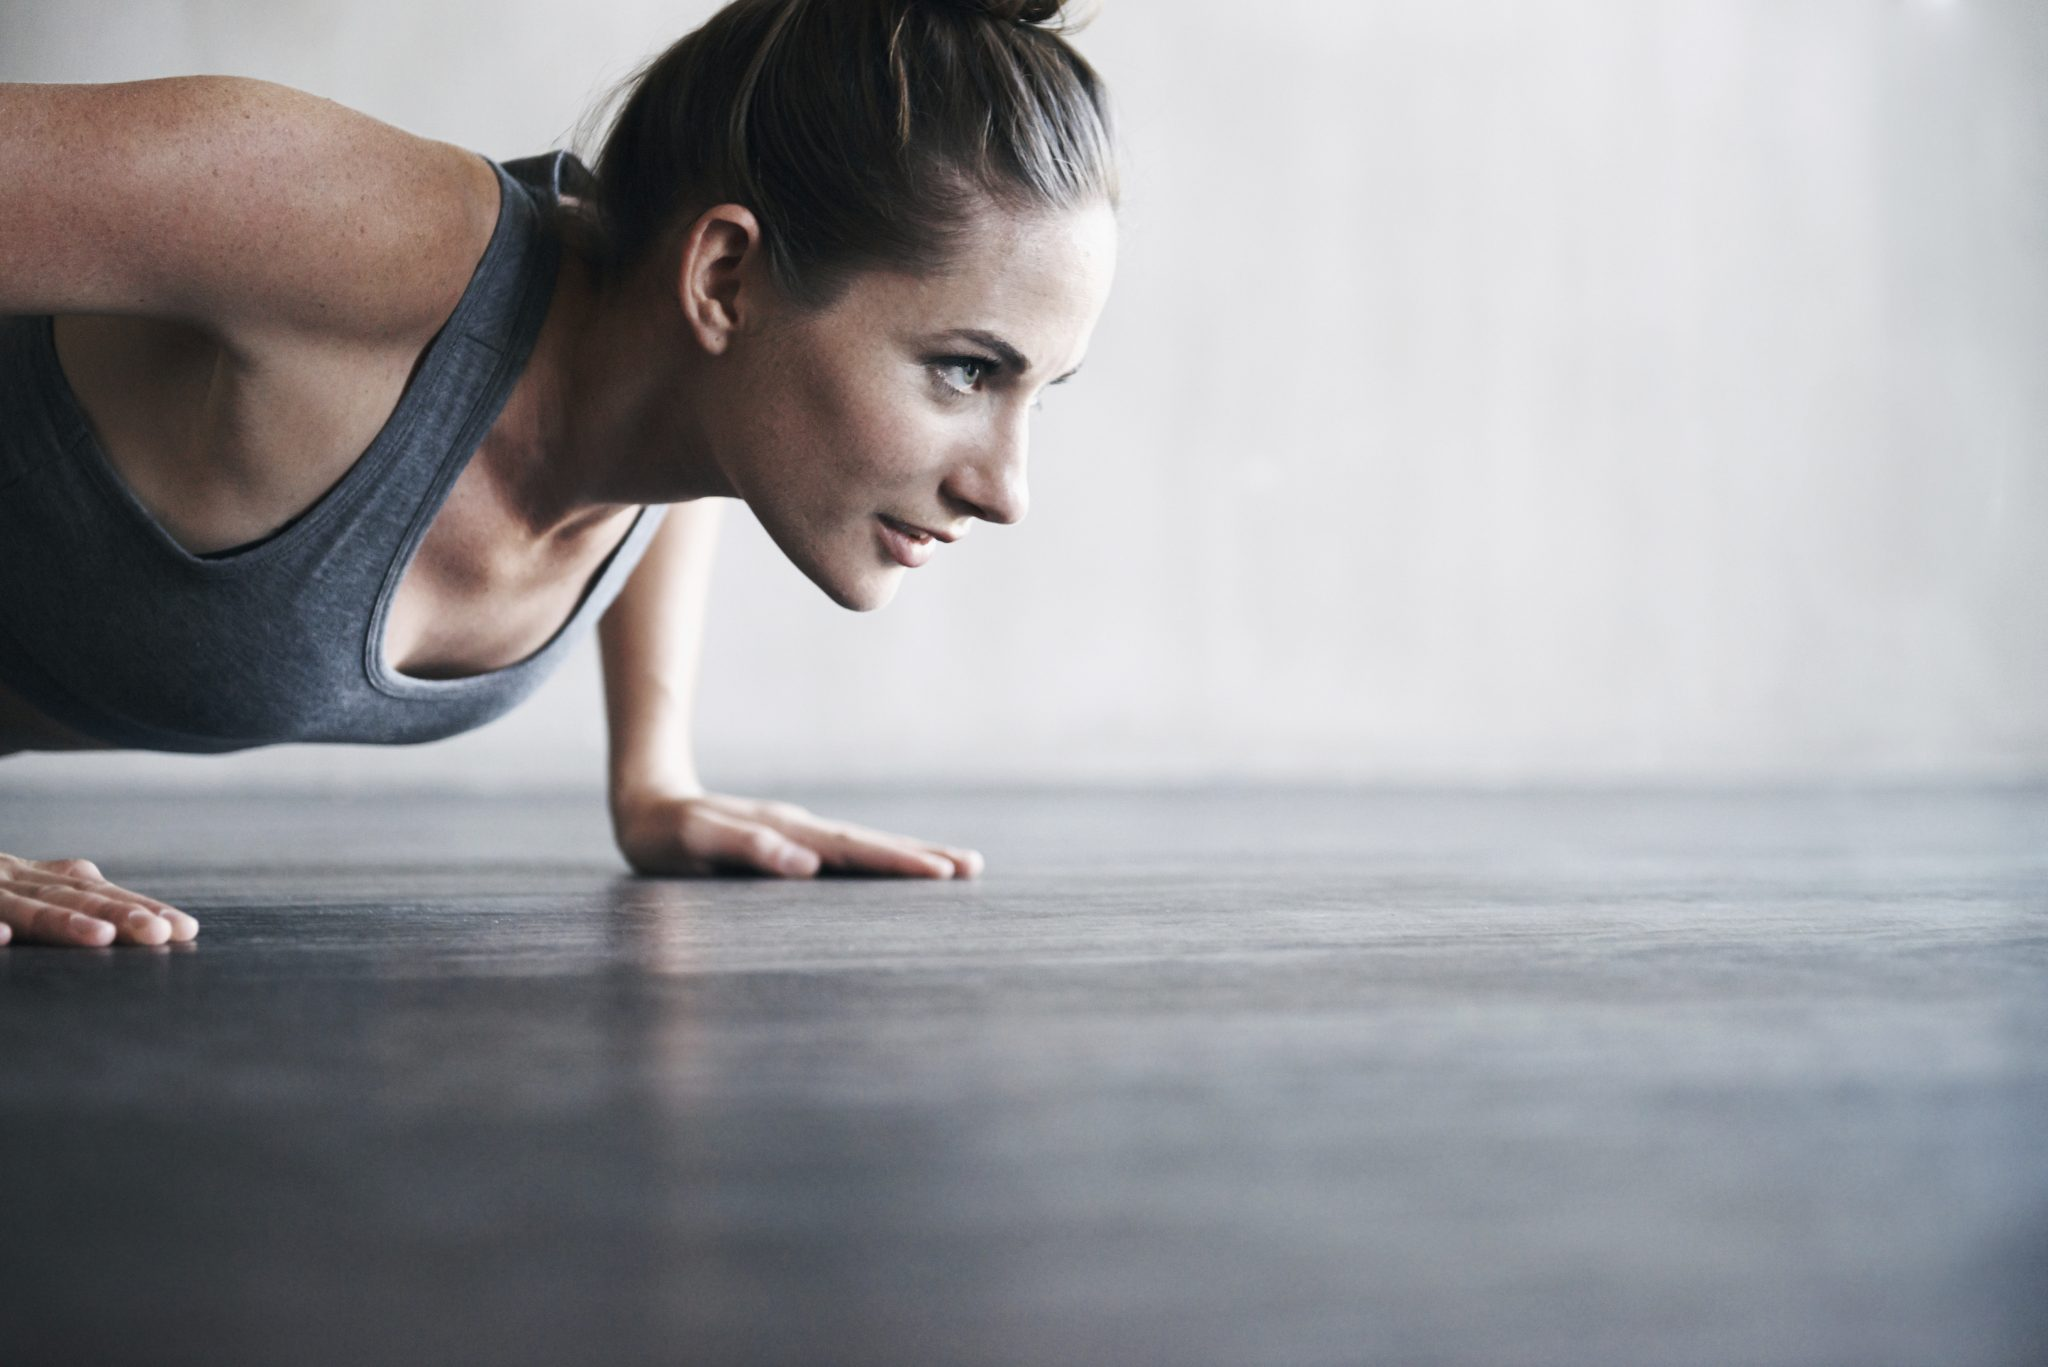 5 Tips to Switch to a Morning Workout Routine